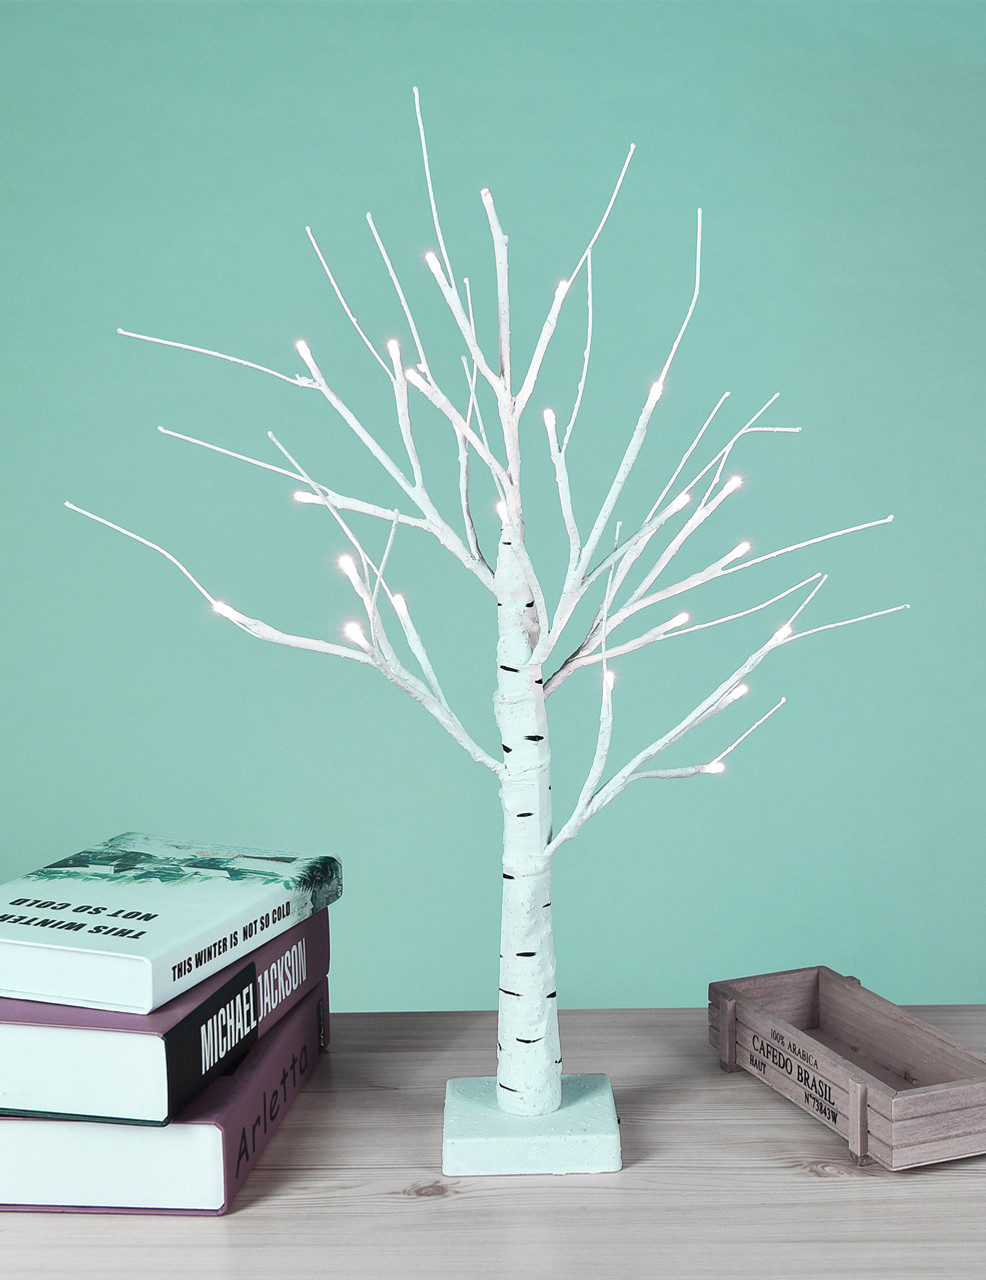 Led Light Shop 24 Lightshare Birch Tree 18 Table Lamp 24 Led Lights Warm White Battery Operated